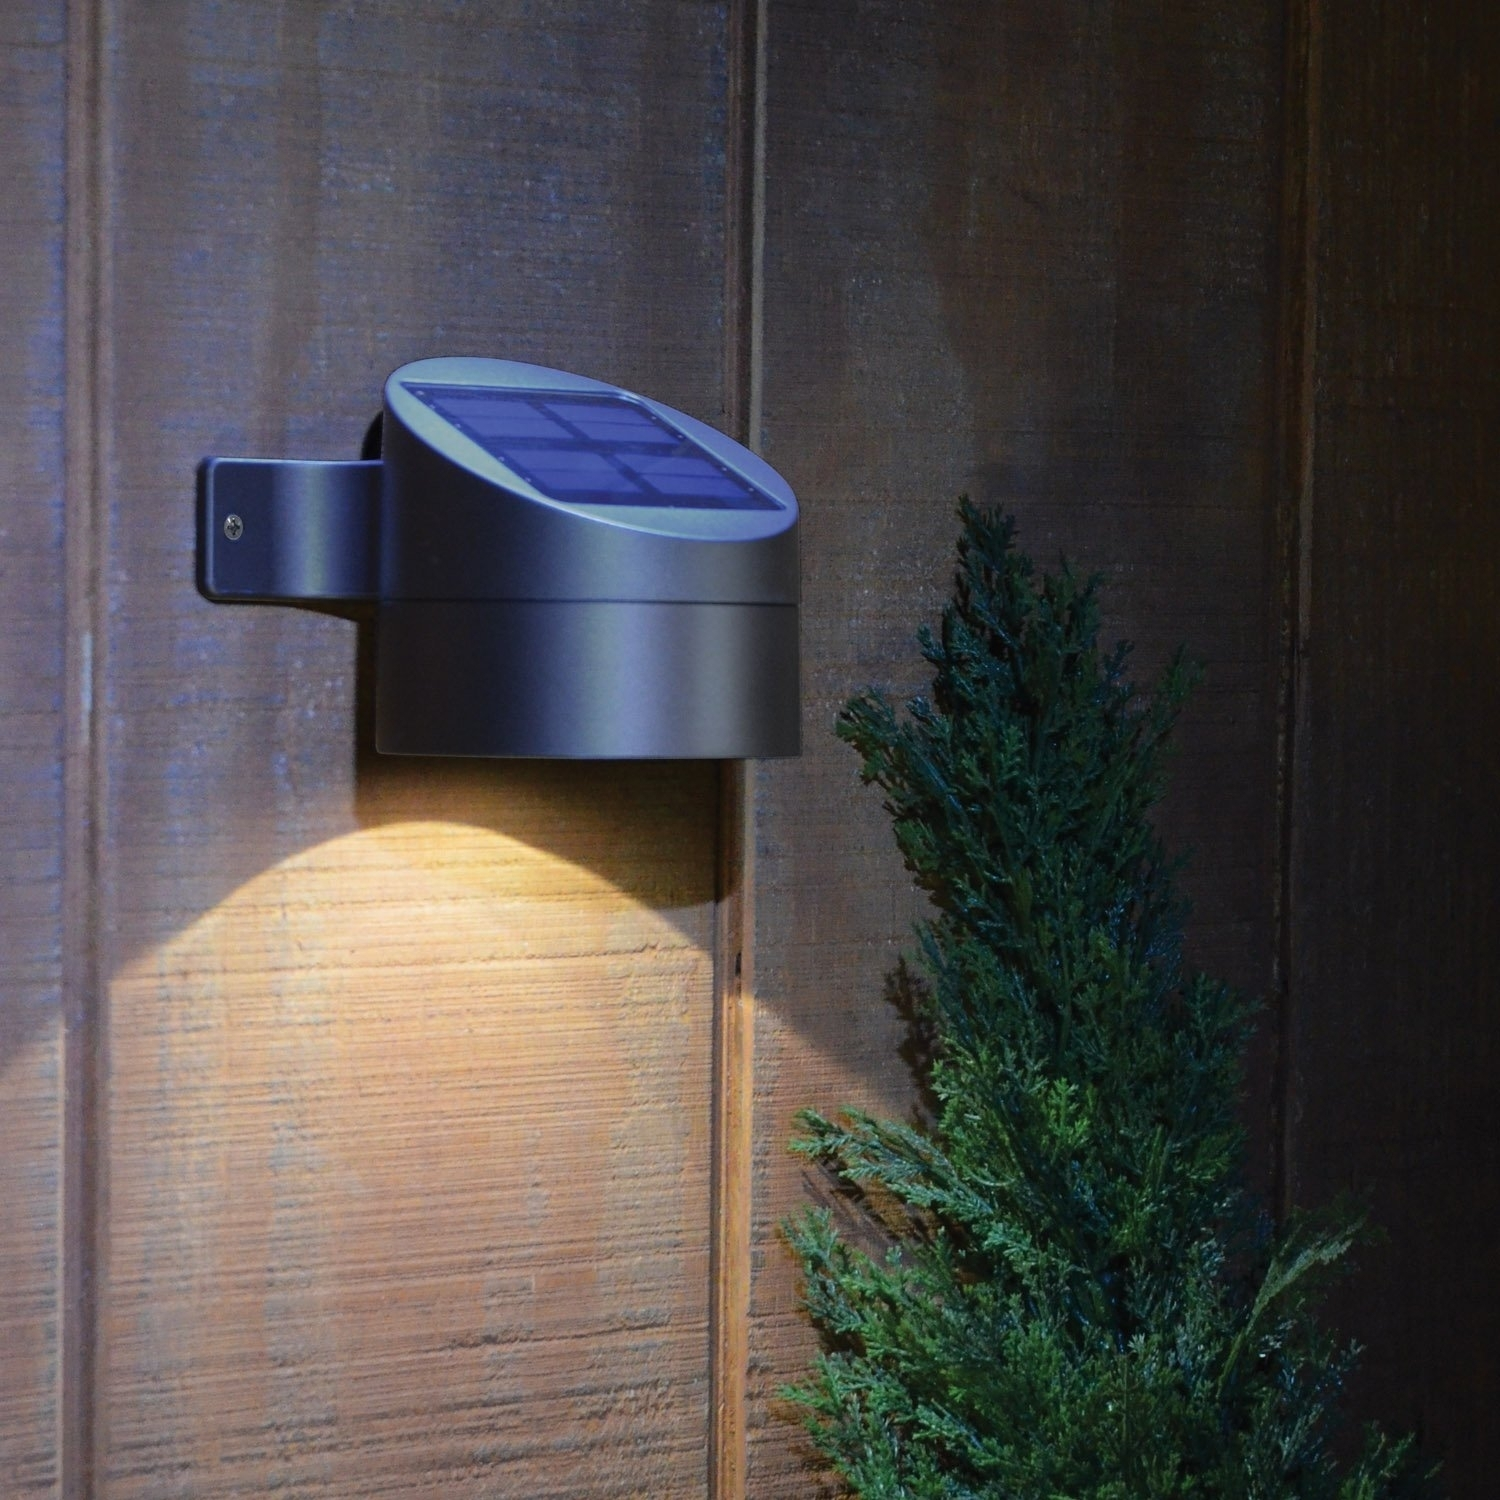 Battery Operated Wall Mounted Outdoor Lights • Outdoor Lighting With Battery Operated Outdoor Wall Lights (#5 of 15)